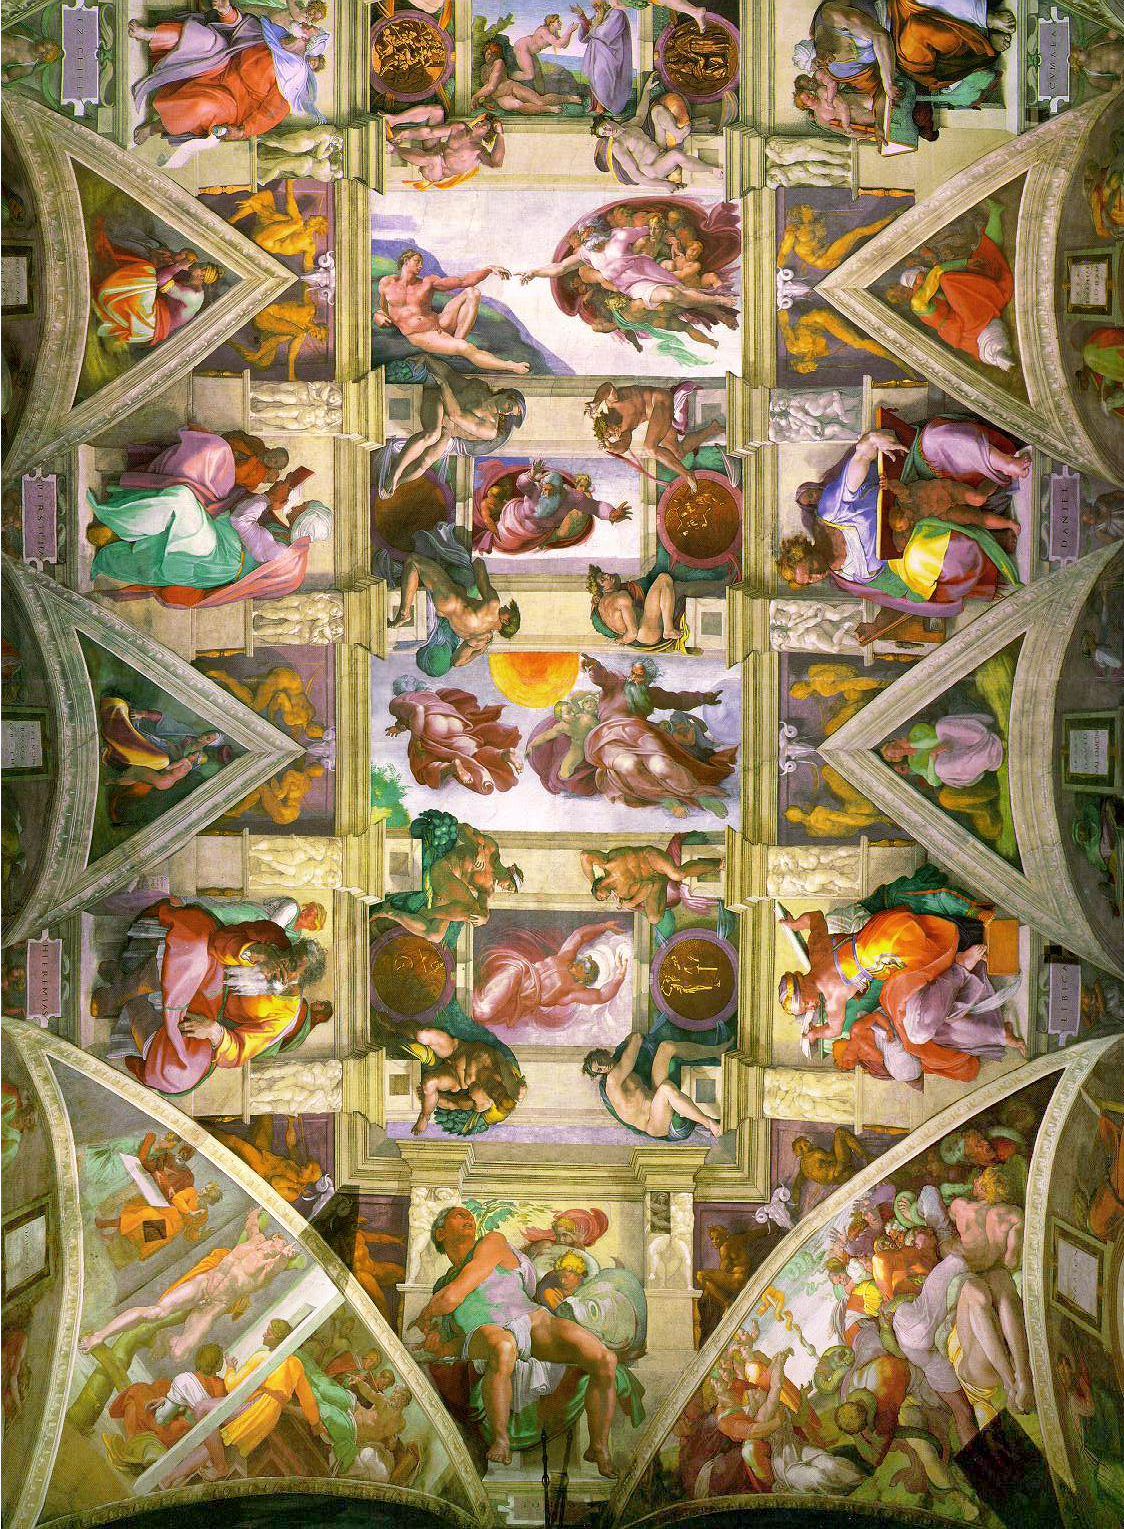 The left half of the ceiling of the Sistine Chapel, painted by Michelangelo in 1508 and restored in 1994